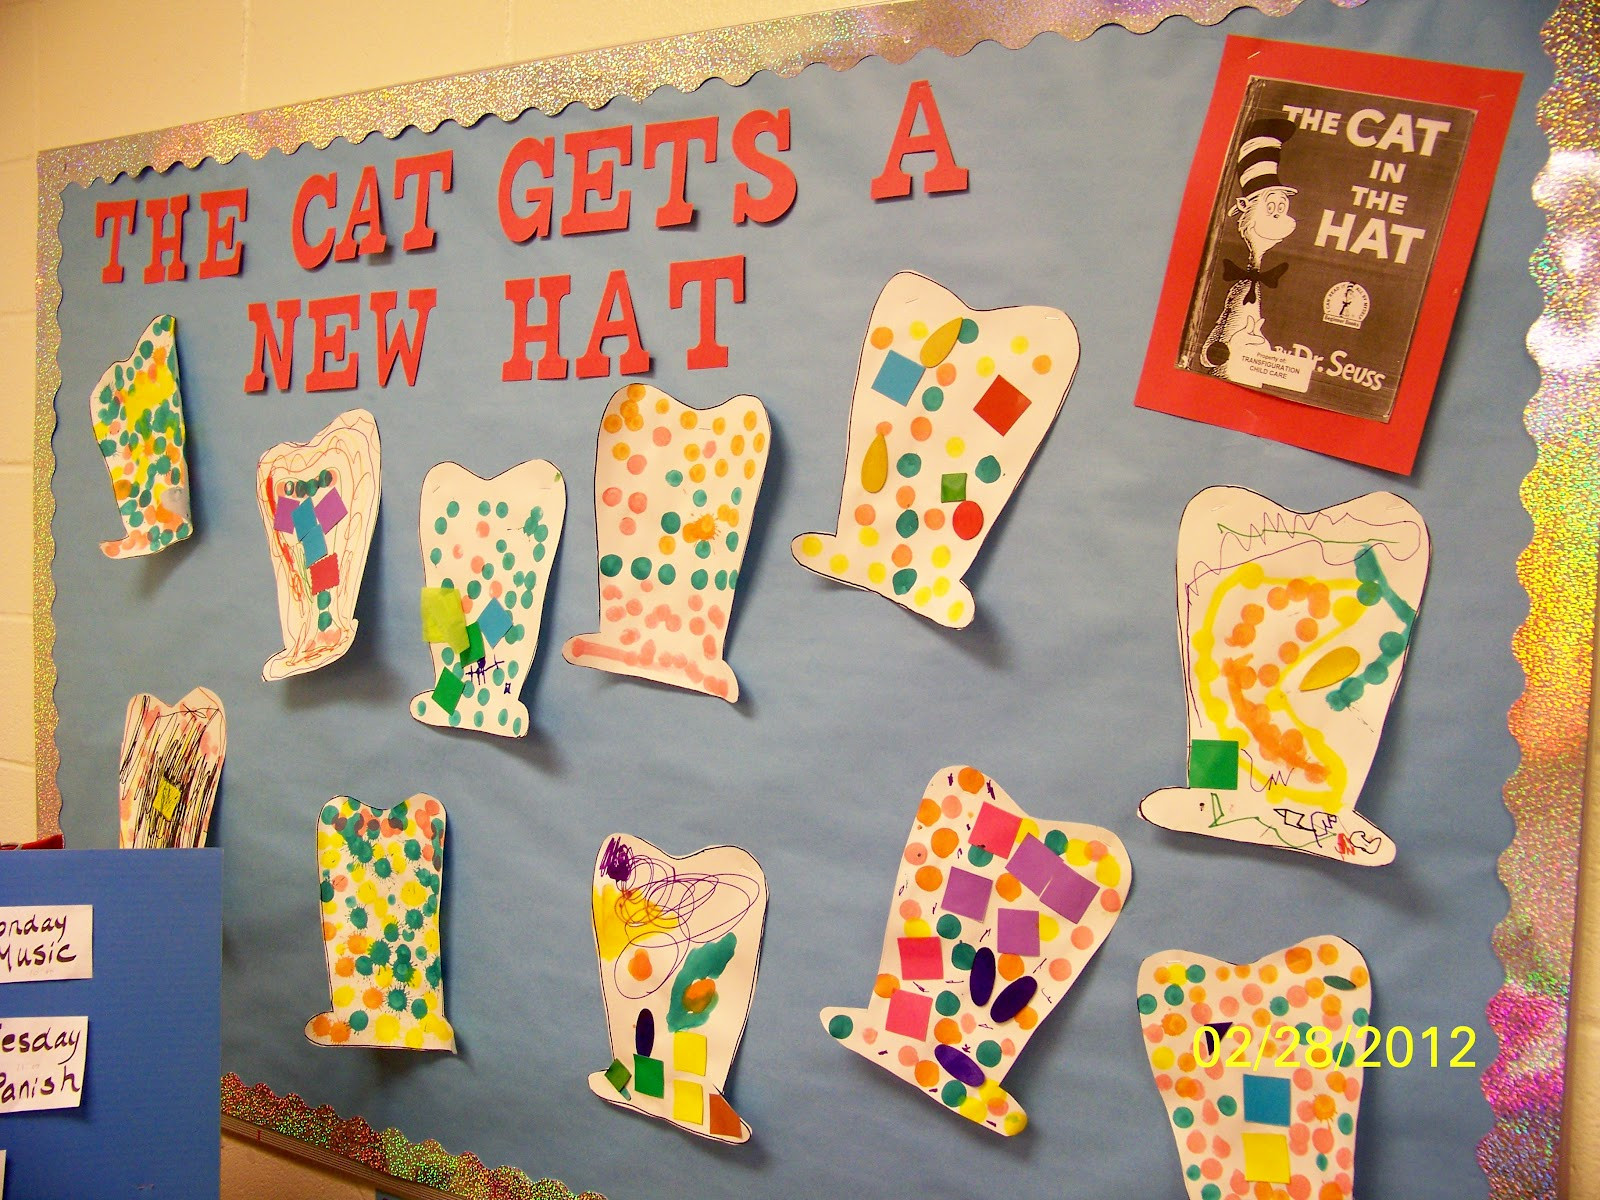 Dr Seuss Craft Ideas For Preschoolers  teaching s what I do March 2012